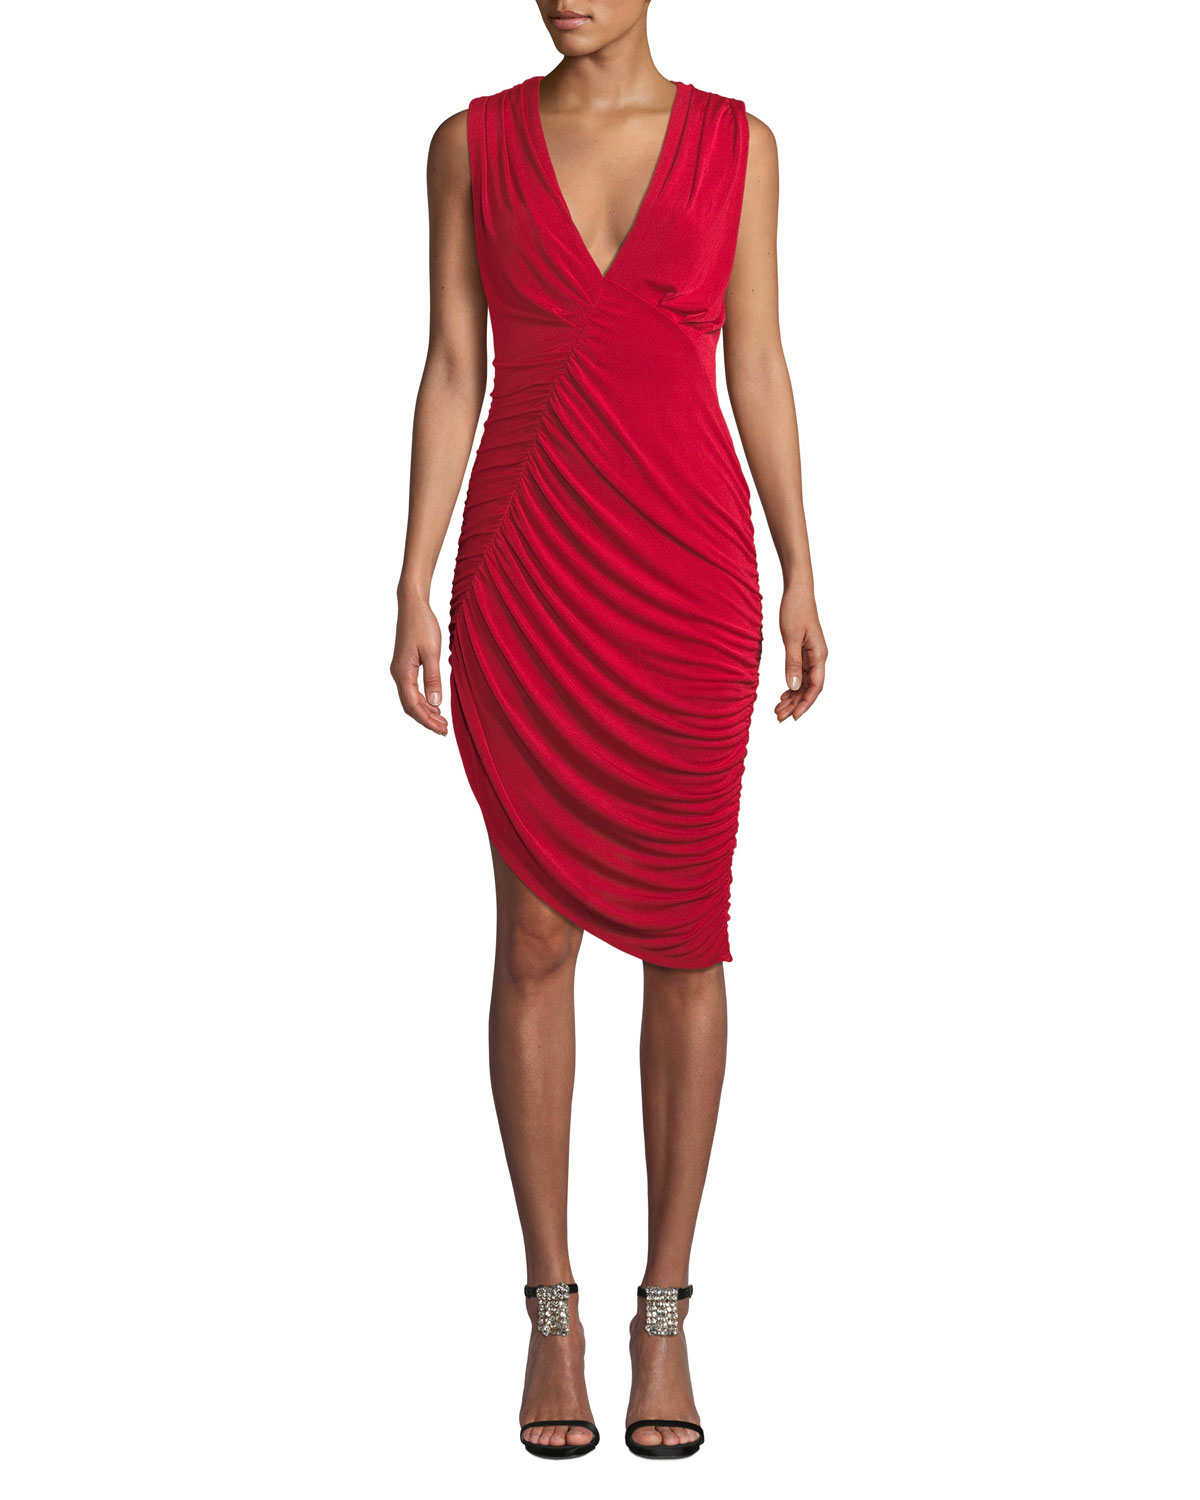 MISHA Pia Sleeveless Ruched Asymmetric Dress in Red